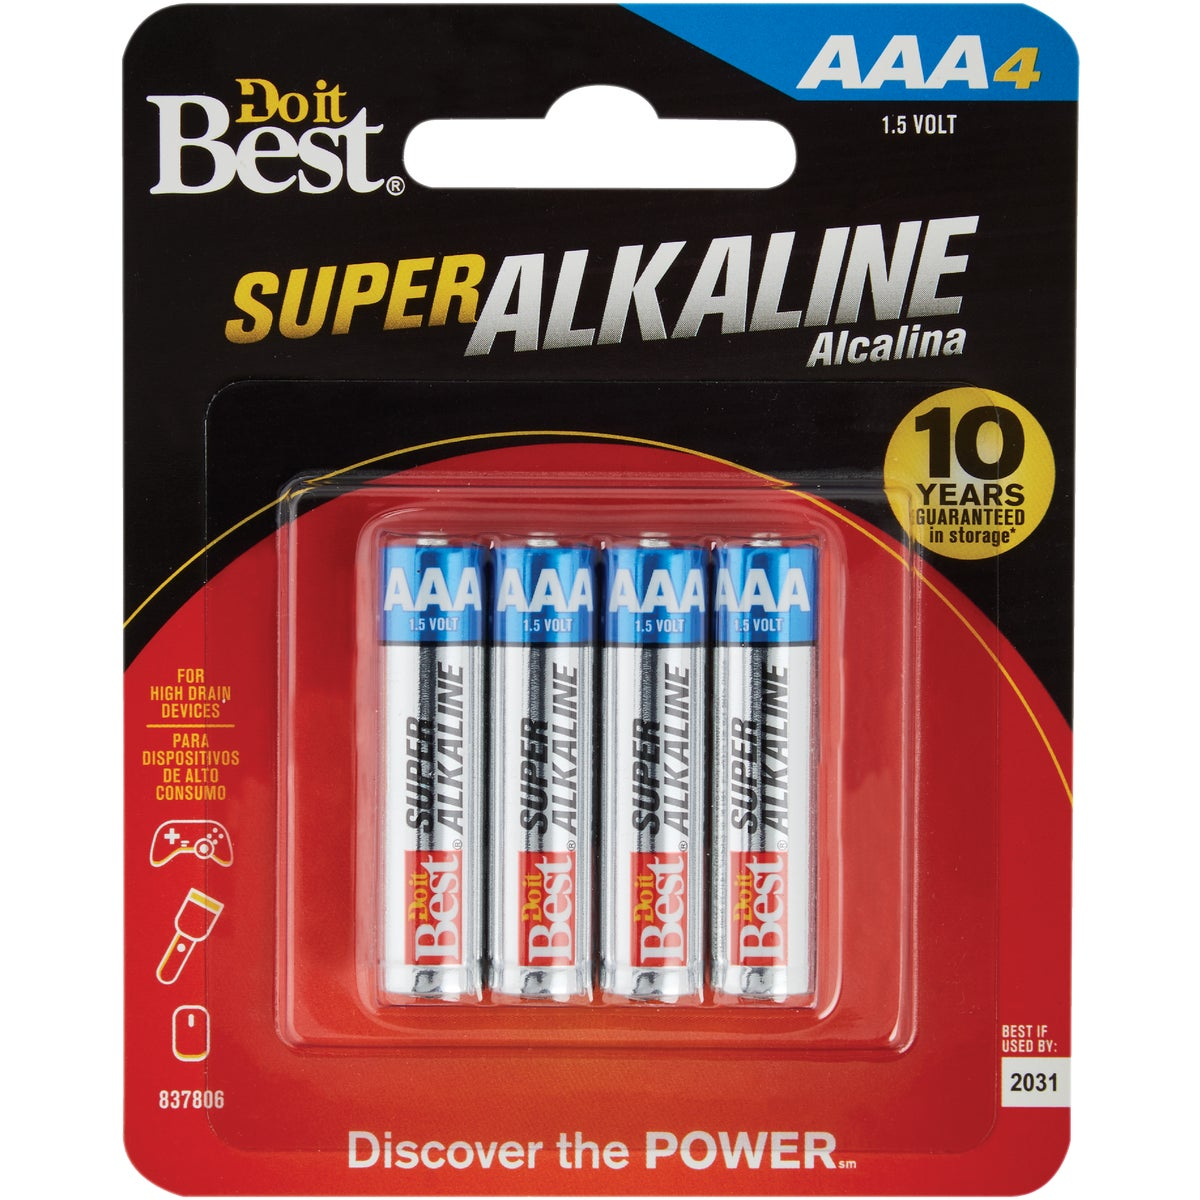 4PK DIB AAA ALK BATTERY